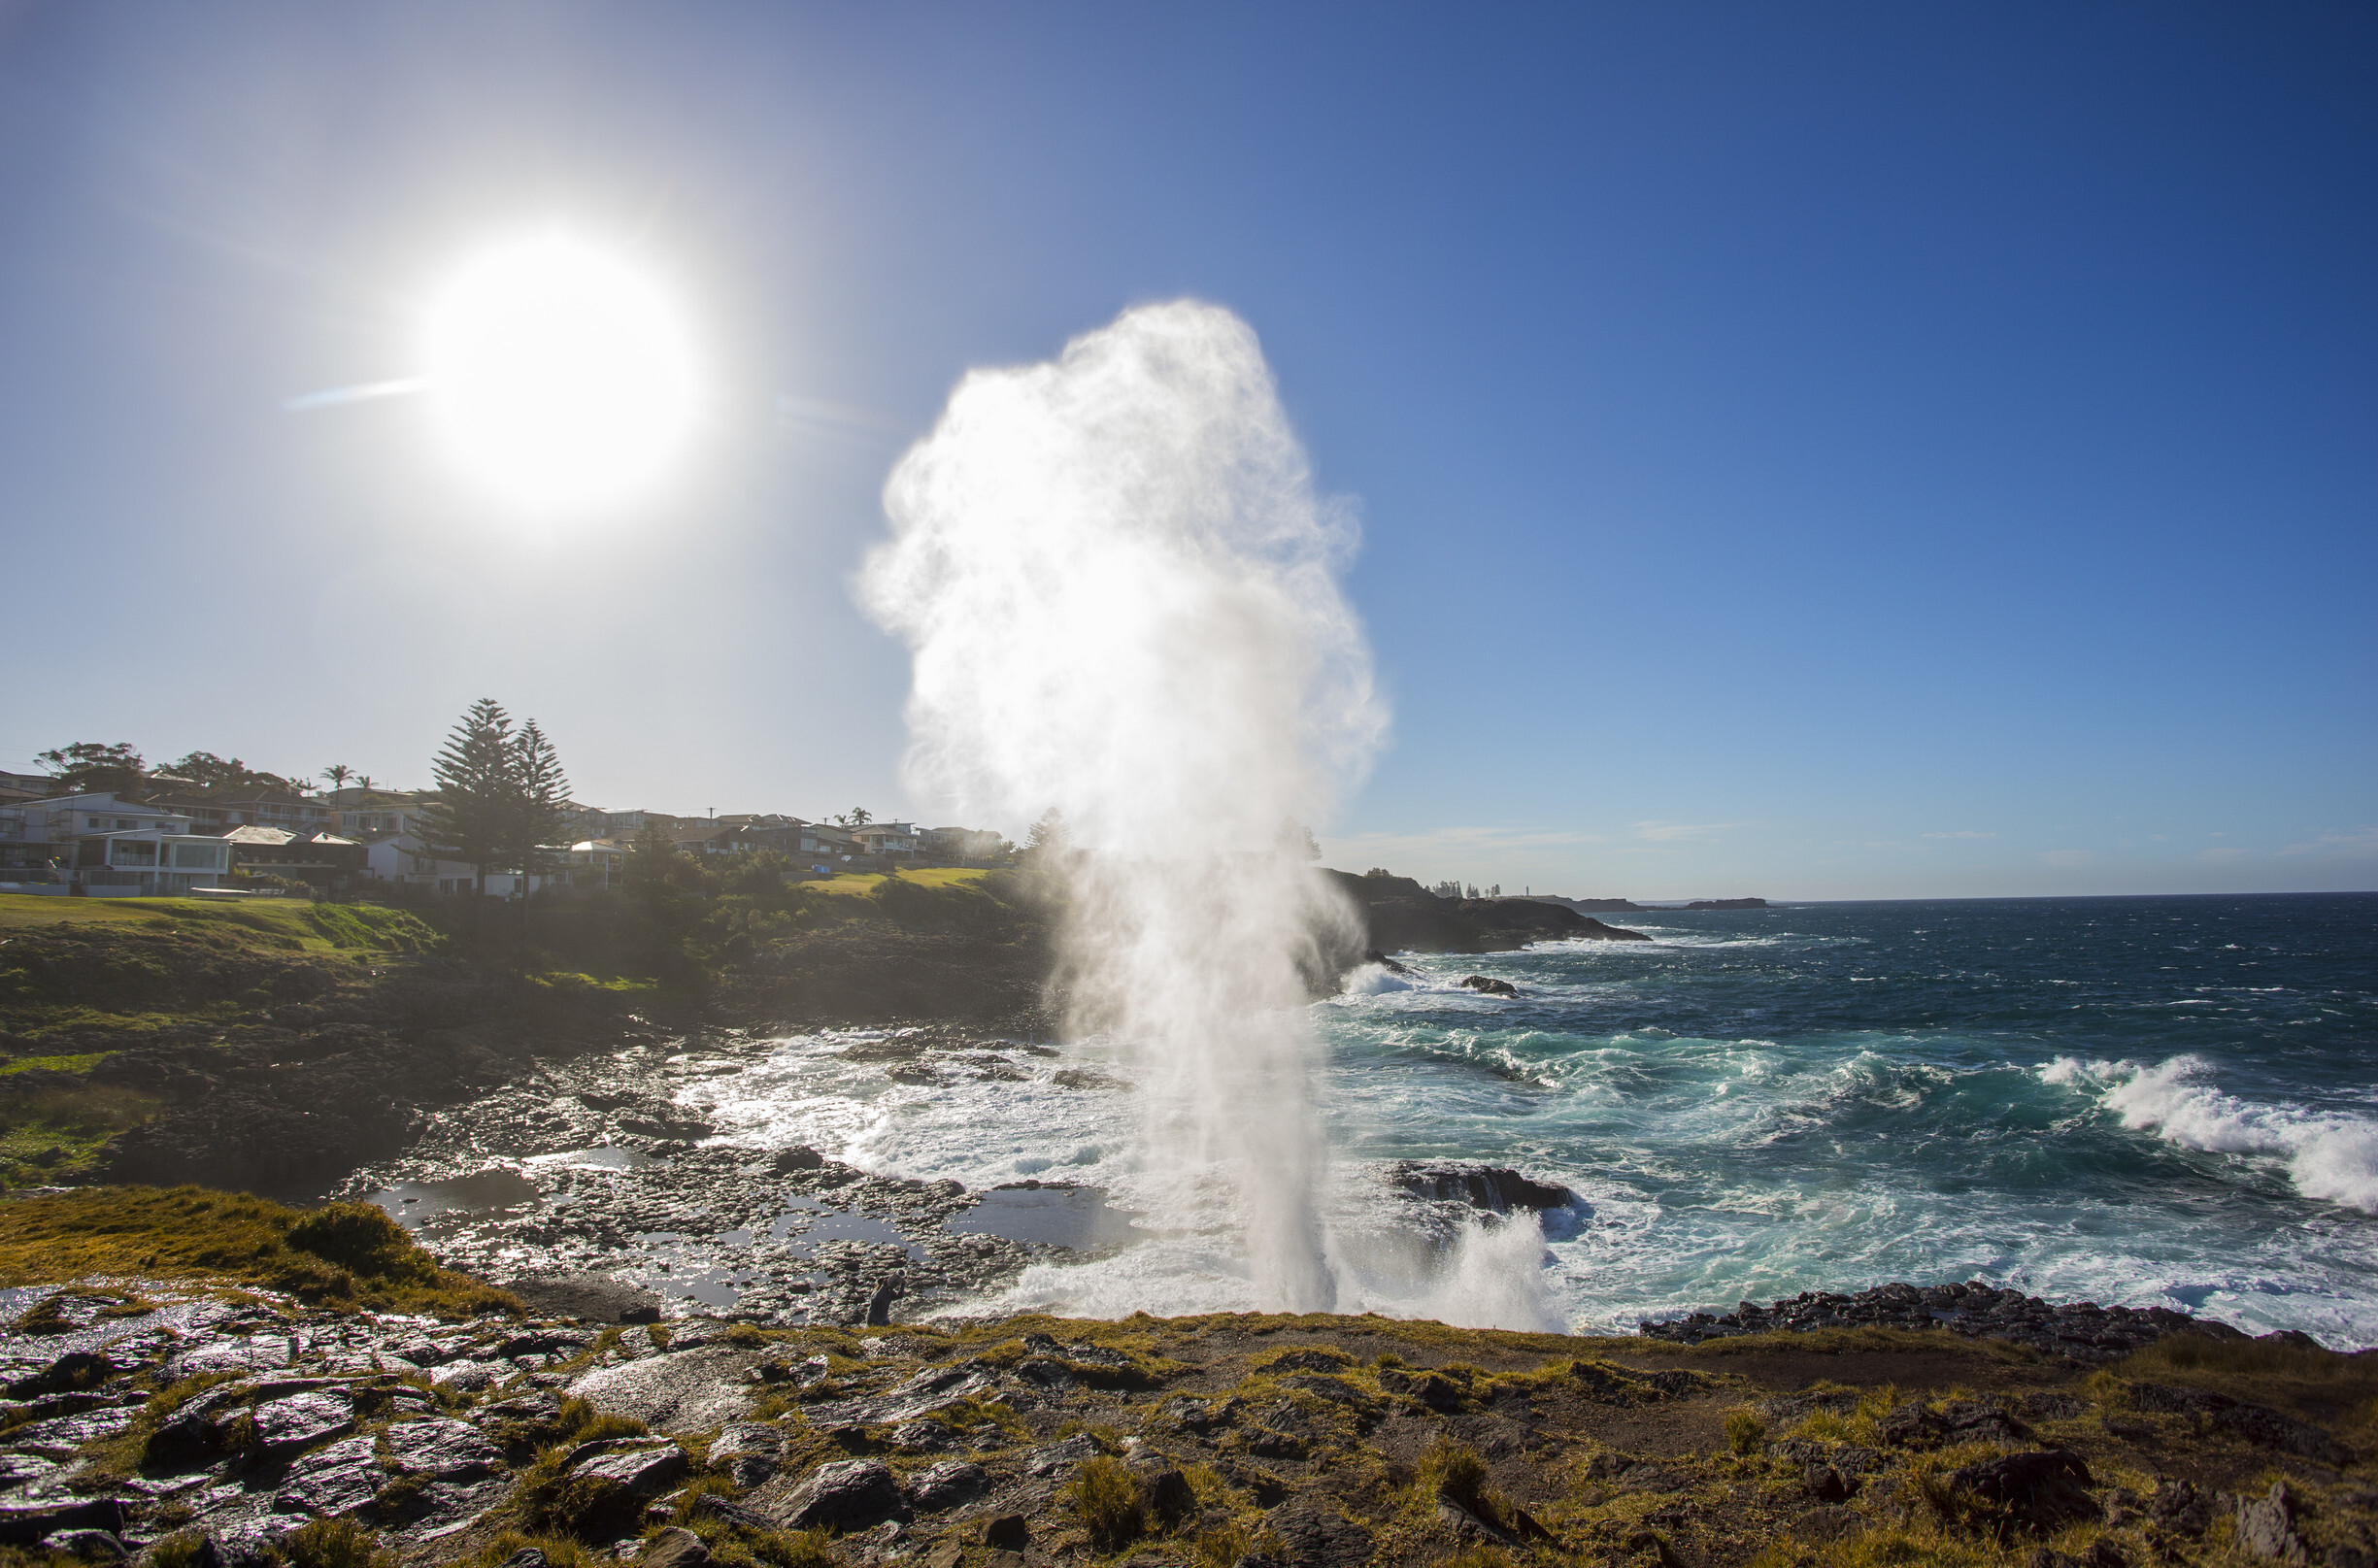 Where to find the best blowholes in New South Wales